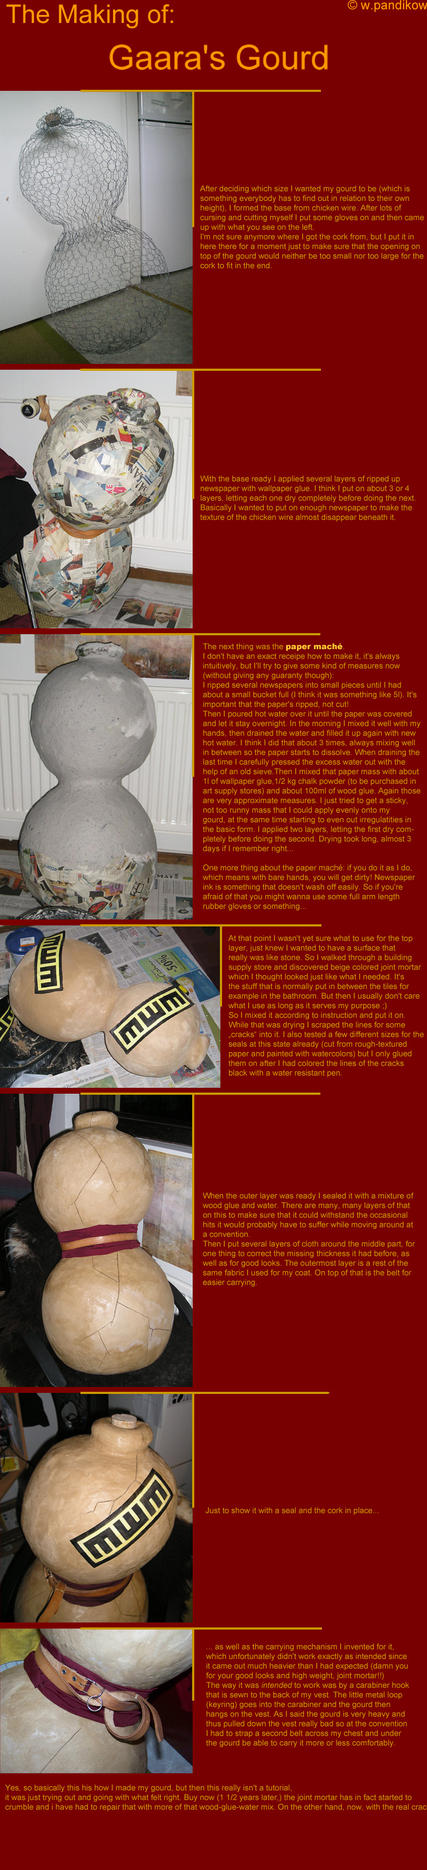 The Making of Gaara's Gourd by ThundersSilence